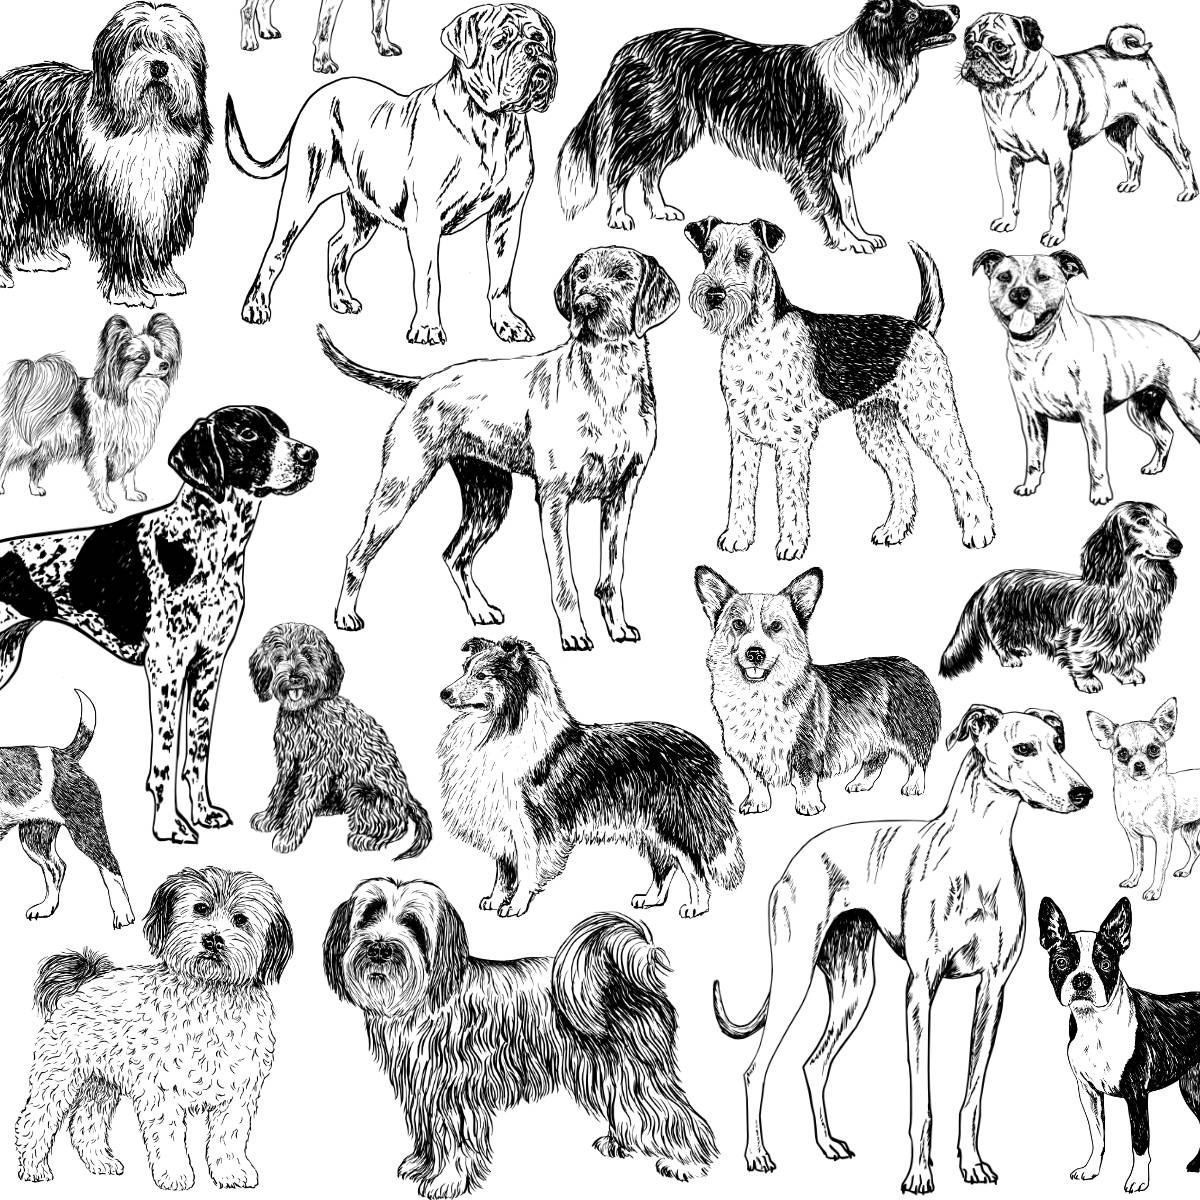 Dog Breed Illustrations | The Enlightened Hound